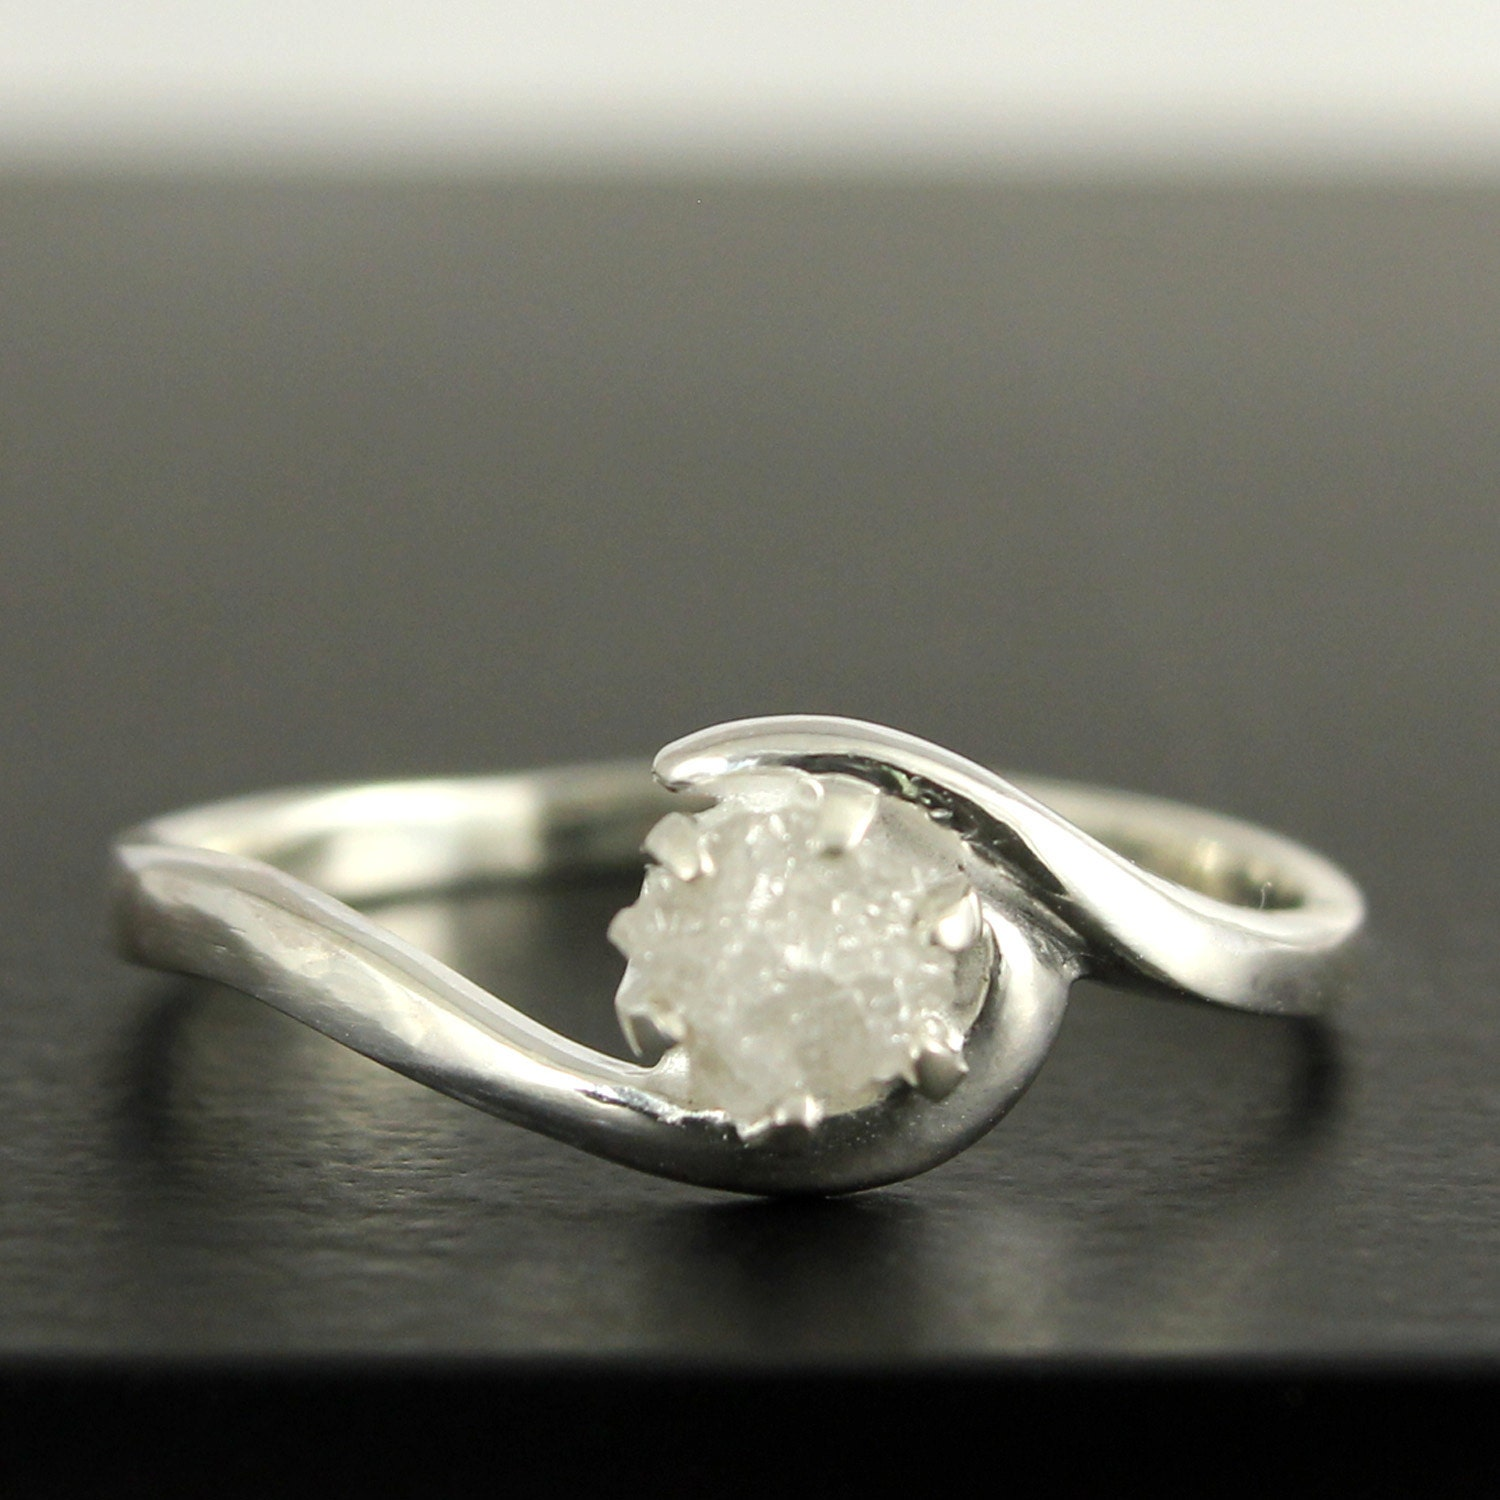 White Rough Diamond Engagement Ring Sterling Silver Prong